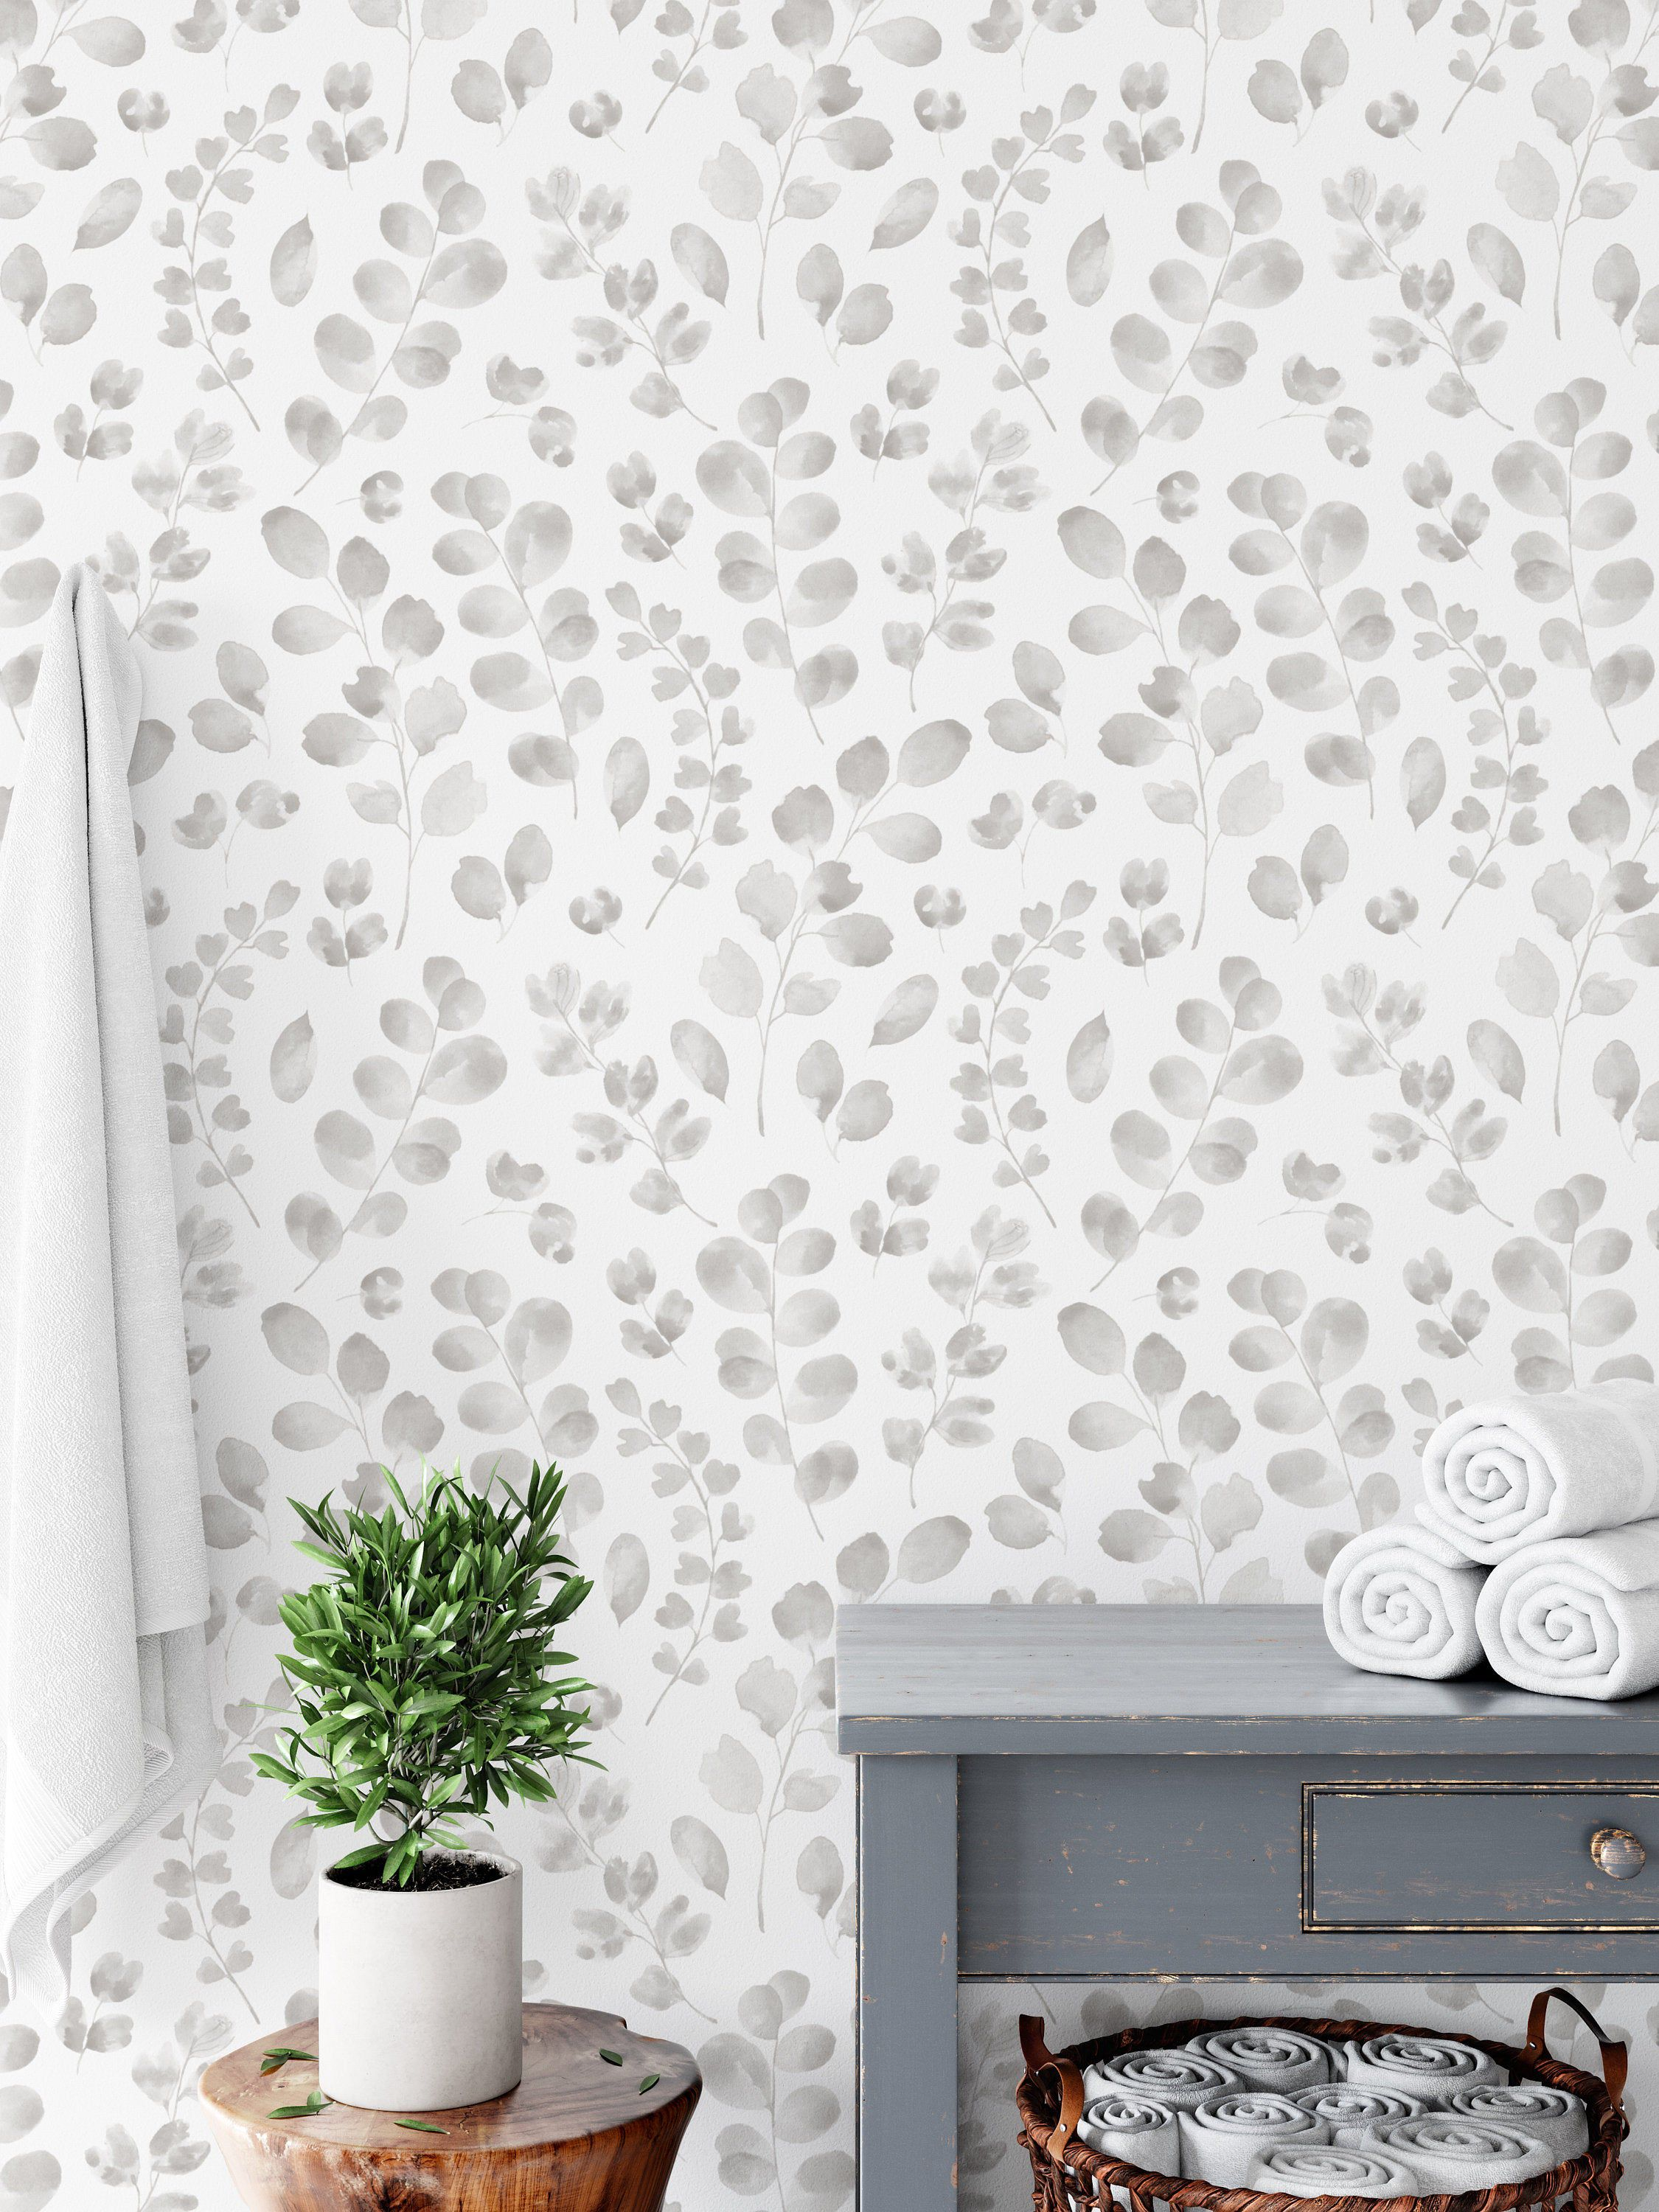 Warm Grey Floral Wallpaper Light Pastel Watercolor Peel And Etsy Grey Floral Wallpaper Peel And Stick Wallpaper Floral Wallpaper